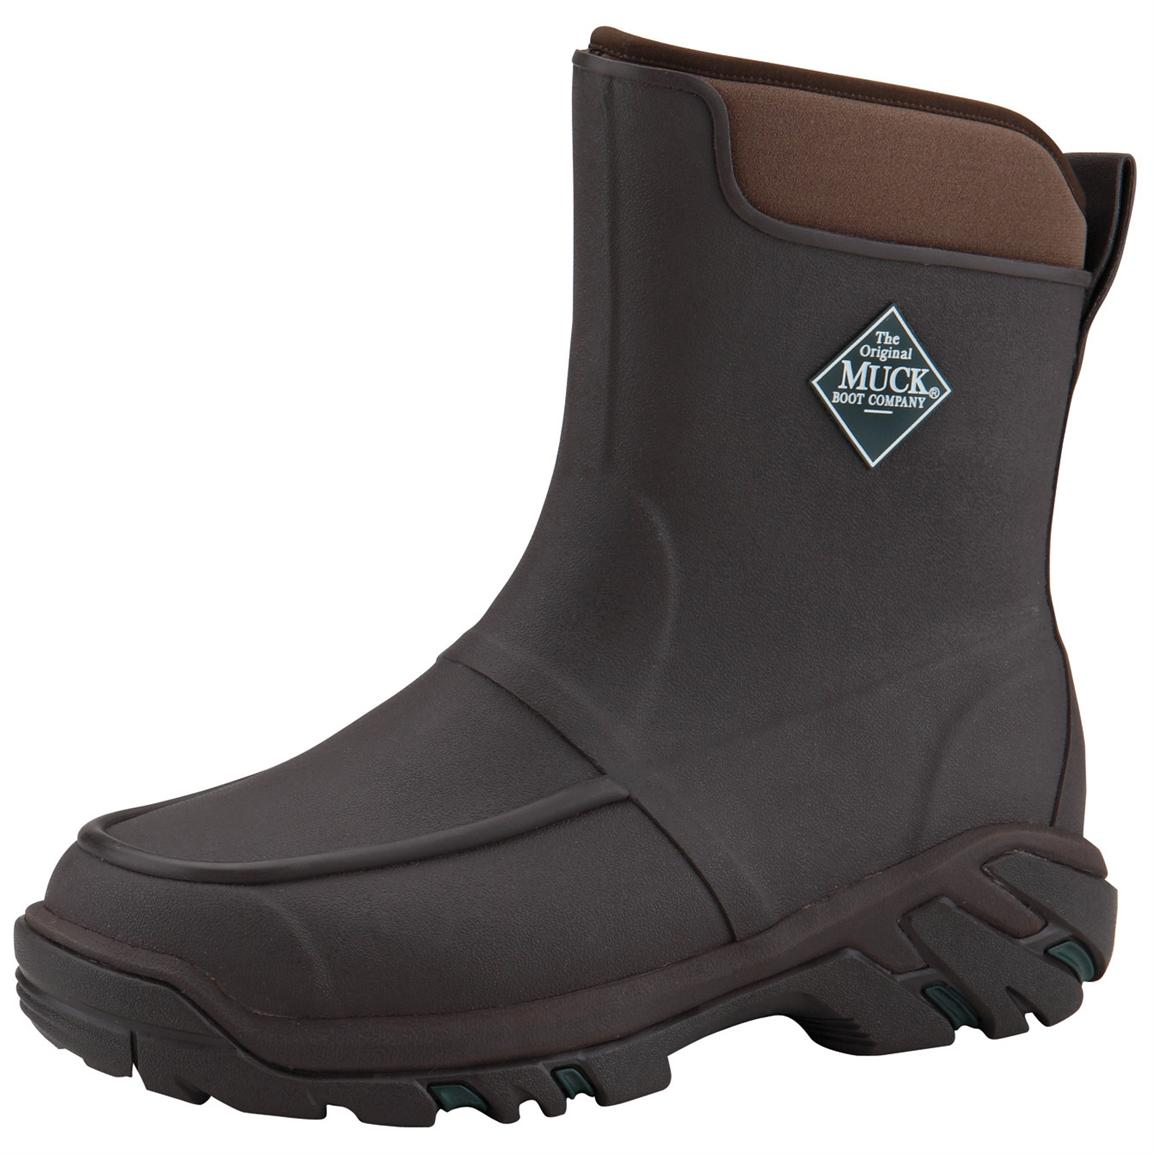 Men&39s Muck Boots™ 10&quot Uplander HG Waterproof Rubber Hunting Boots